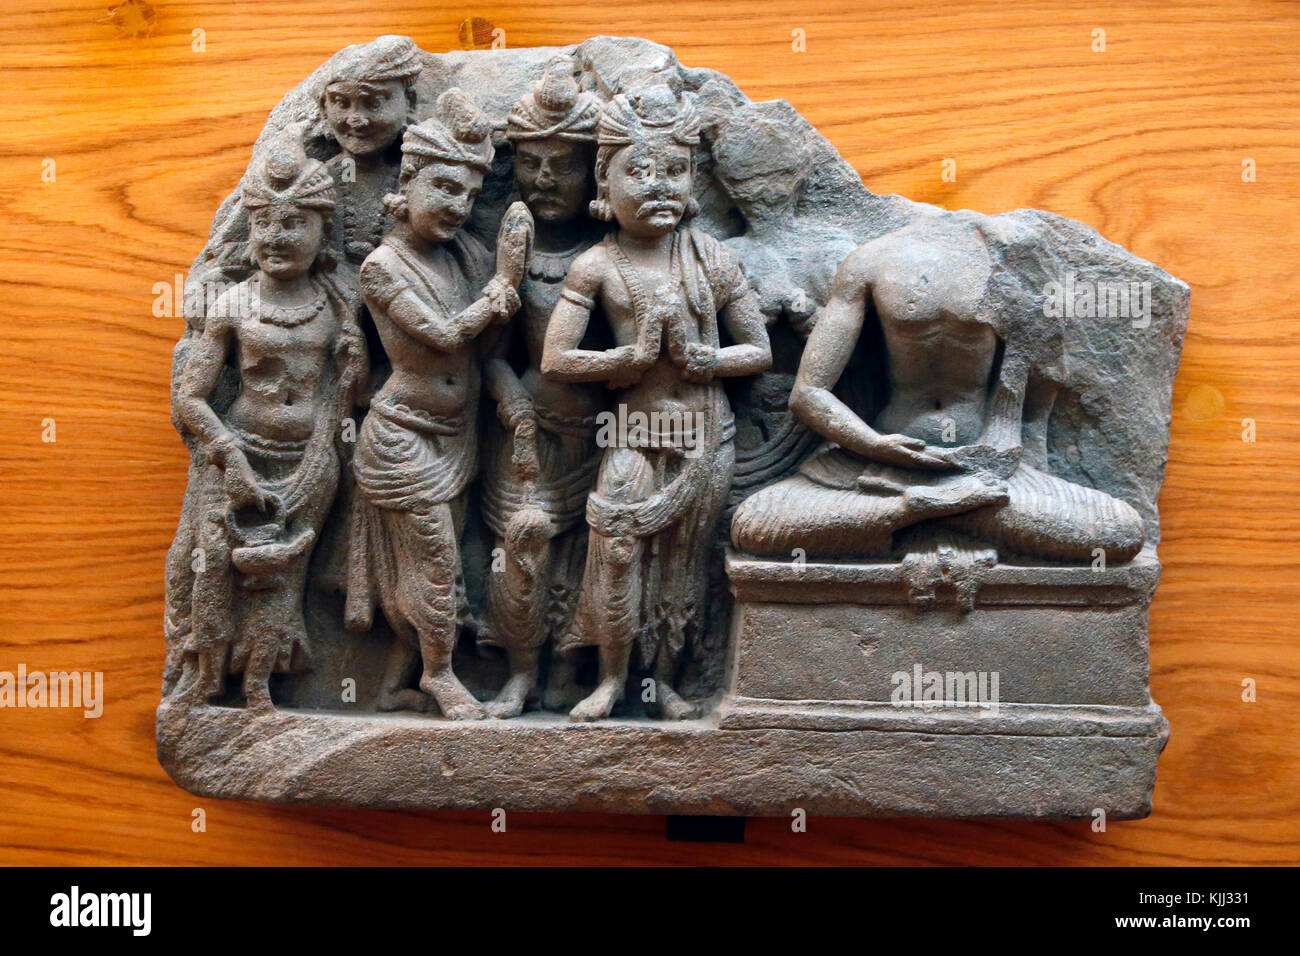 Art Gandhara High Resolution Stock Photography And Images Alamy